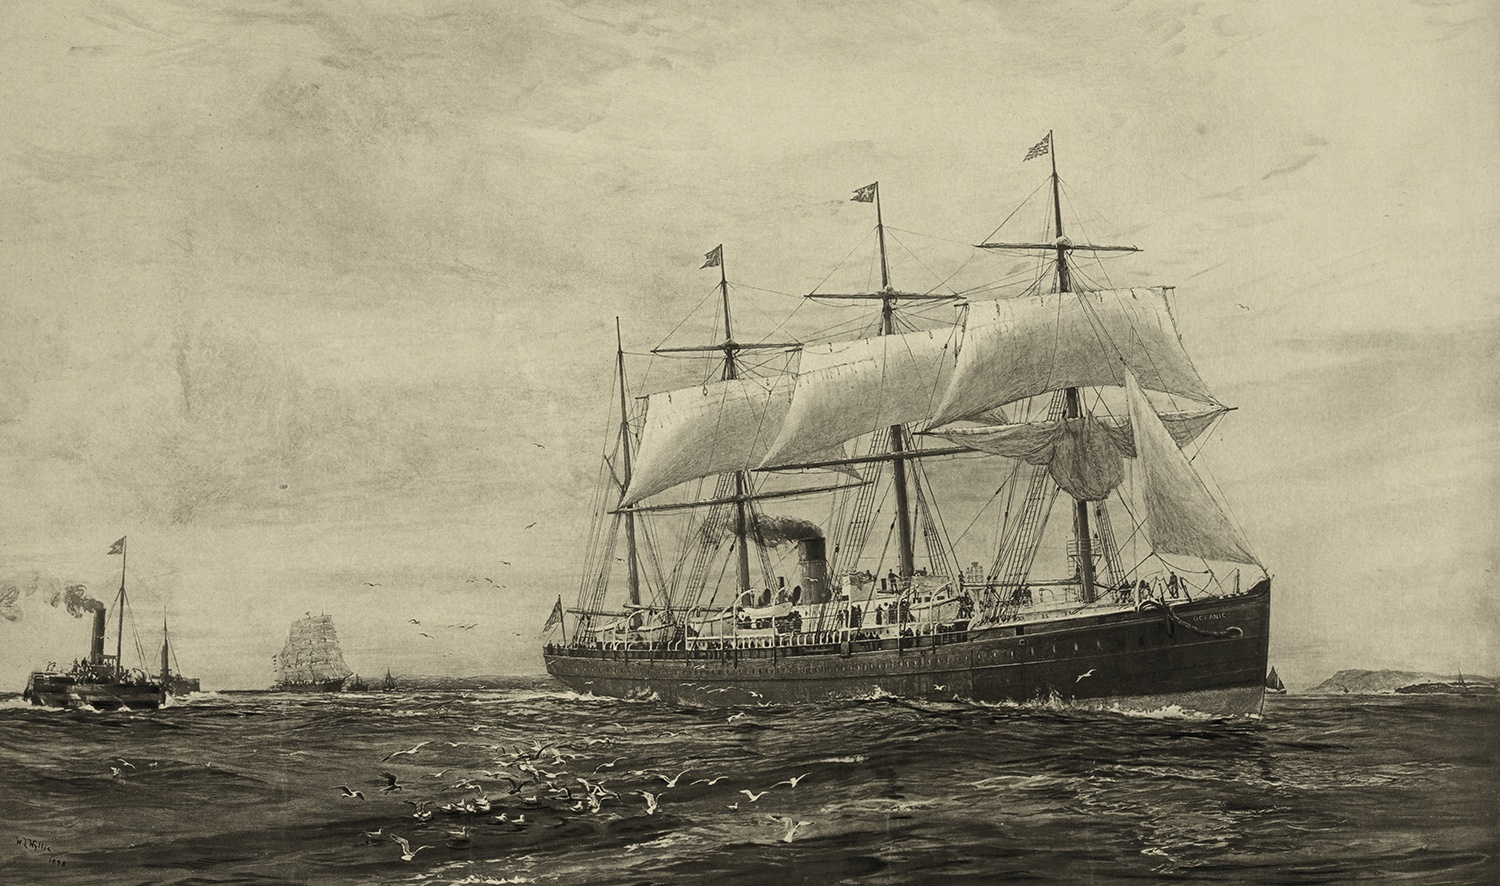 RMS Oceanic, 1871. Courtesy of Wikimedia Commons.